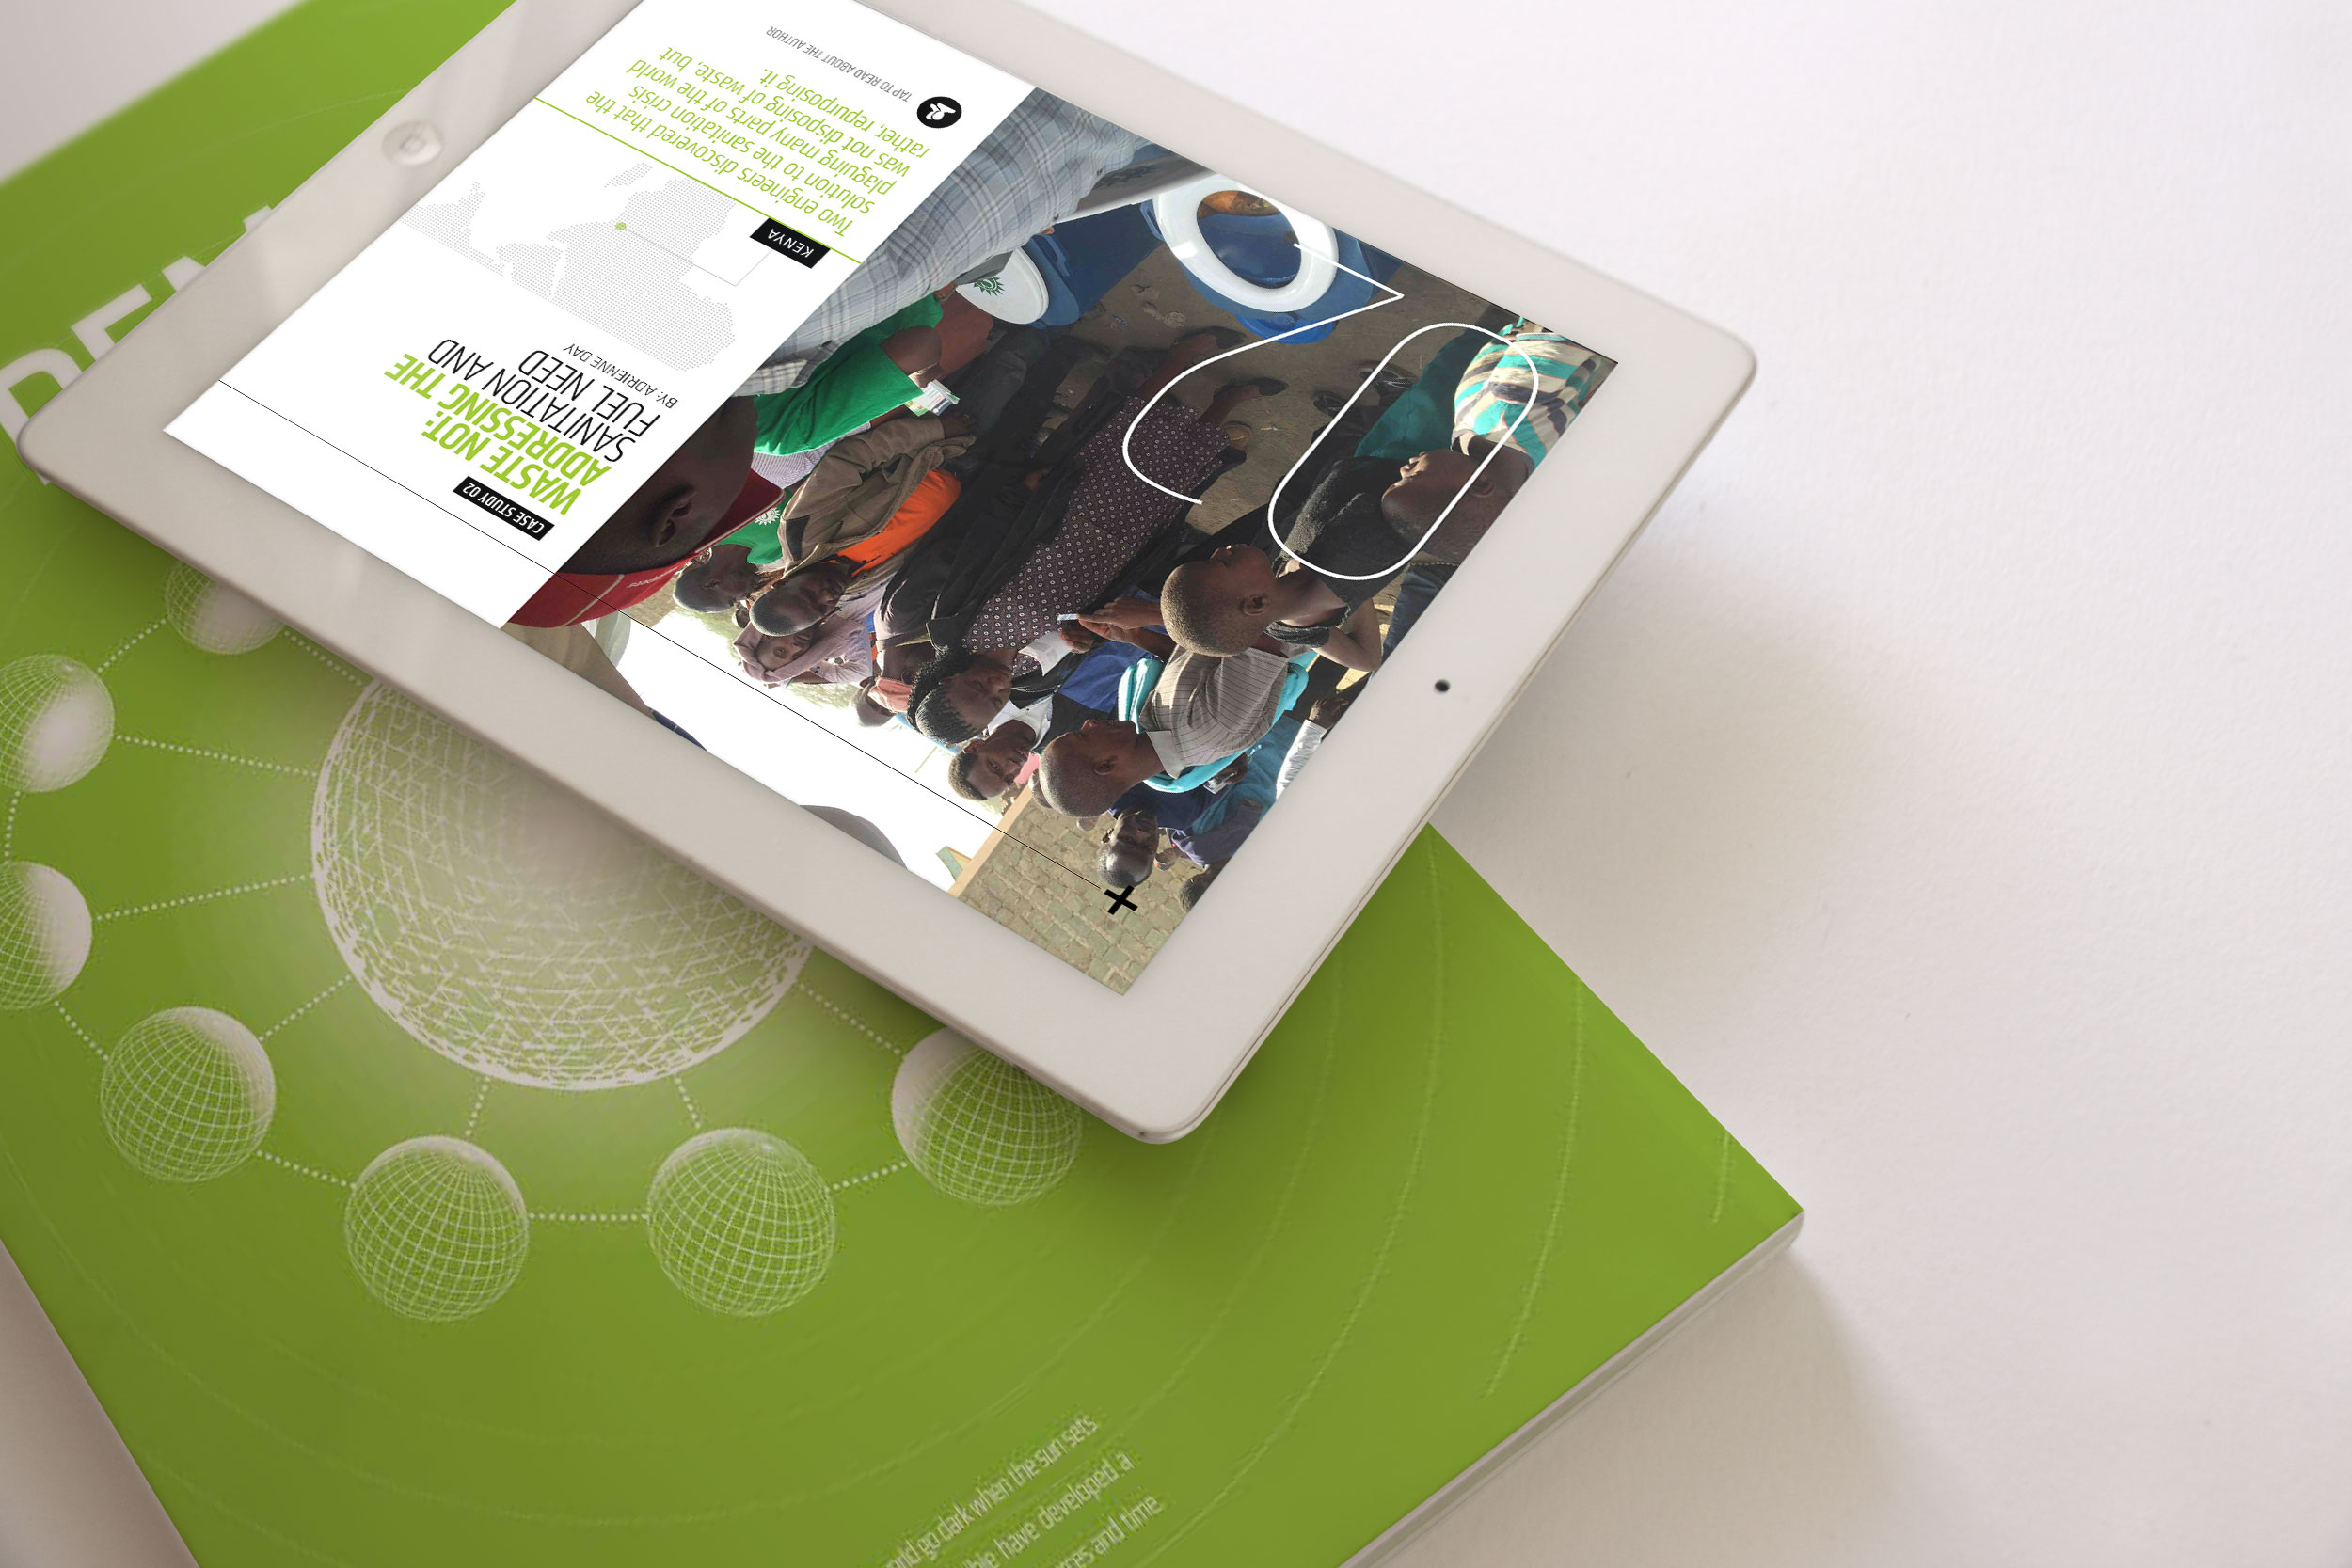 web-DEMAND-iPad-&-Magazine-Mockup.jpg